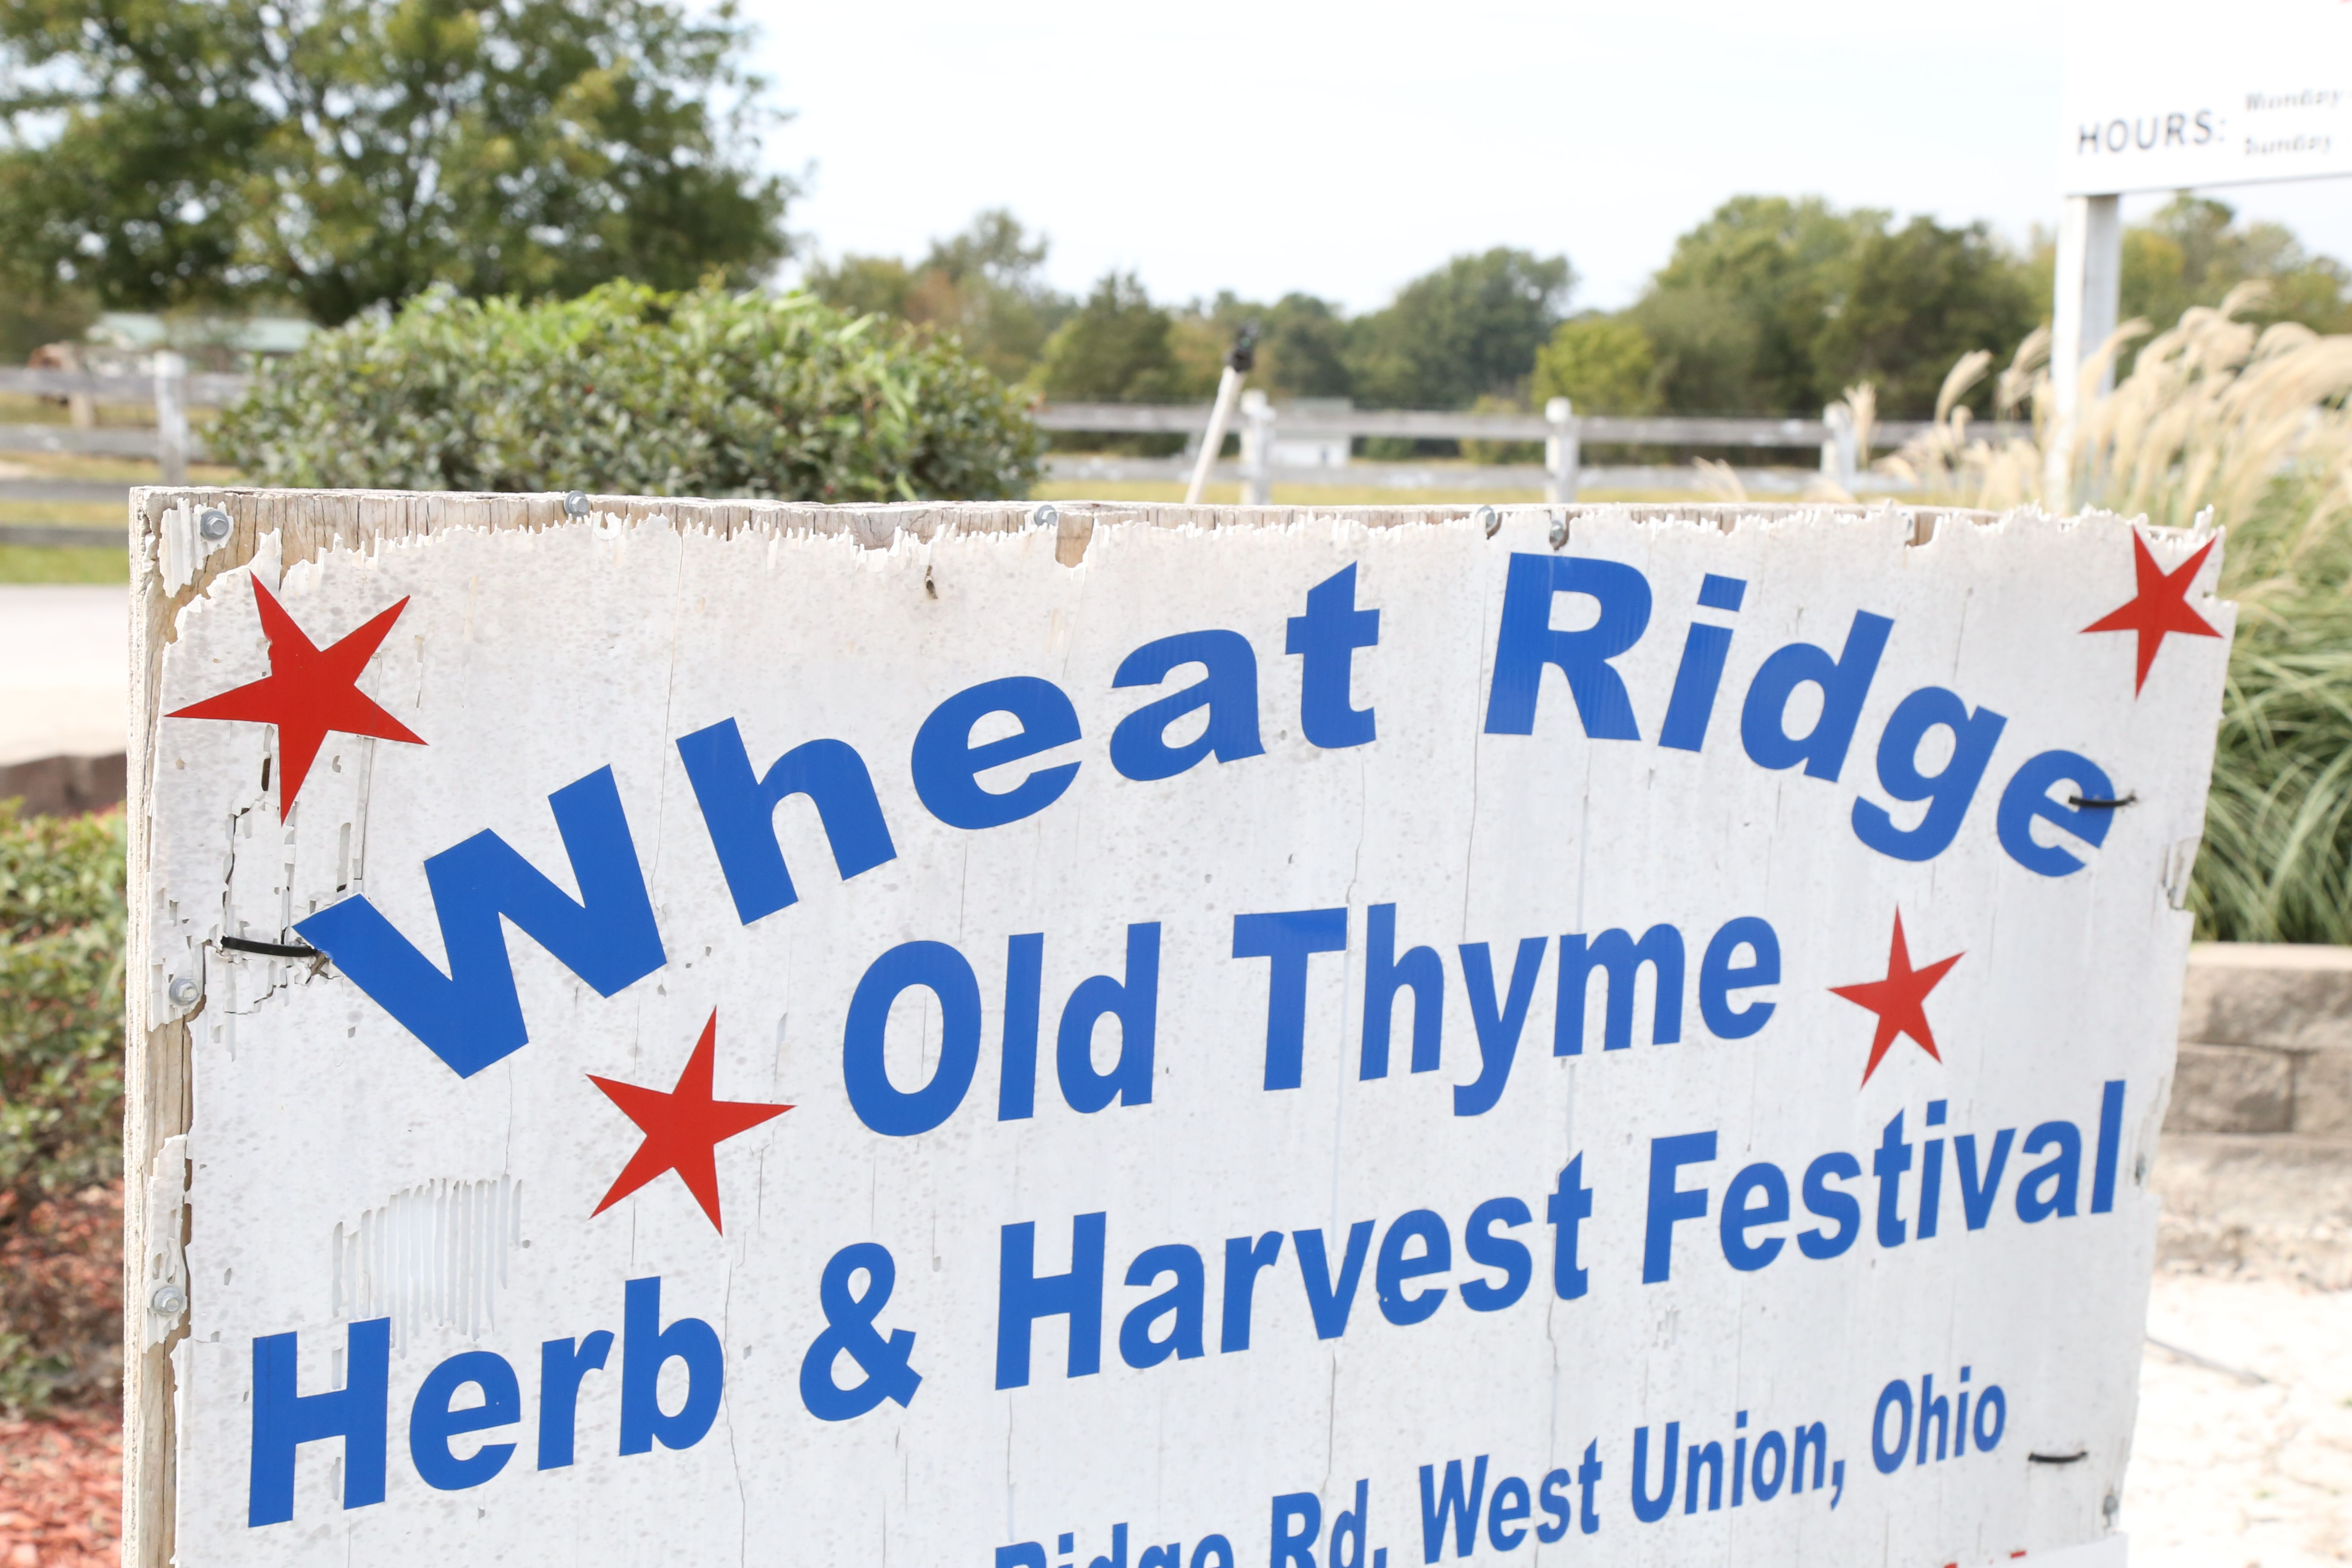 Wheat Ridge Olde Thyme Herb Fair Harvest Festival Is Held Annually Every October At 817 Tater Ridge Rd In West Union Ohio This F Thyme Herb West Union Ohio